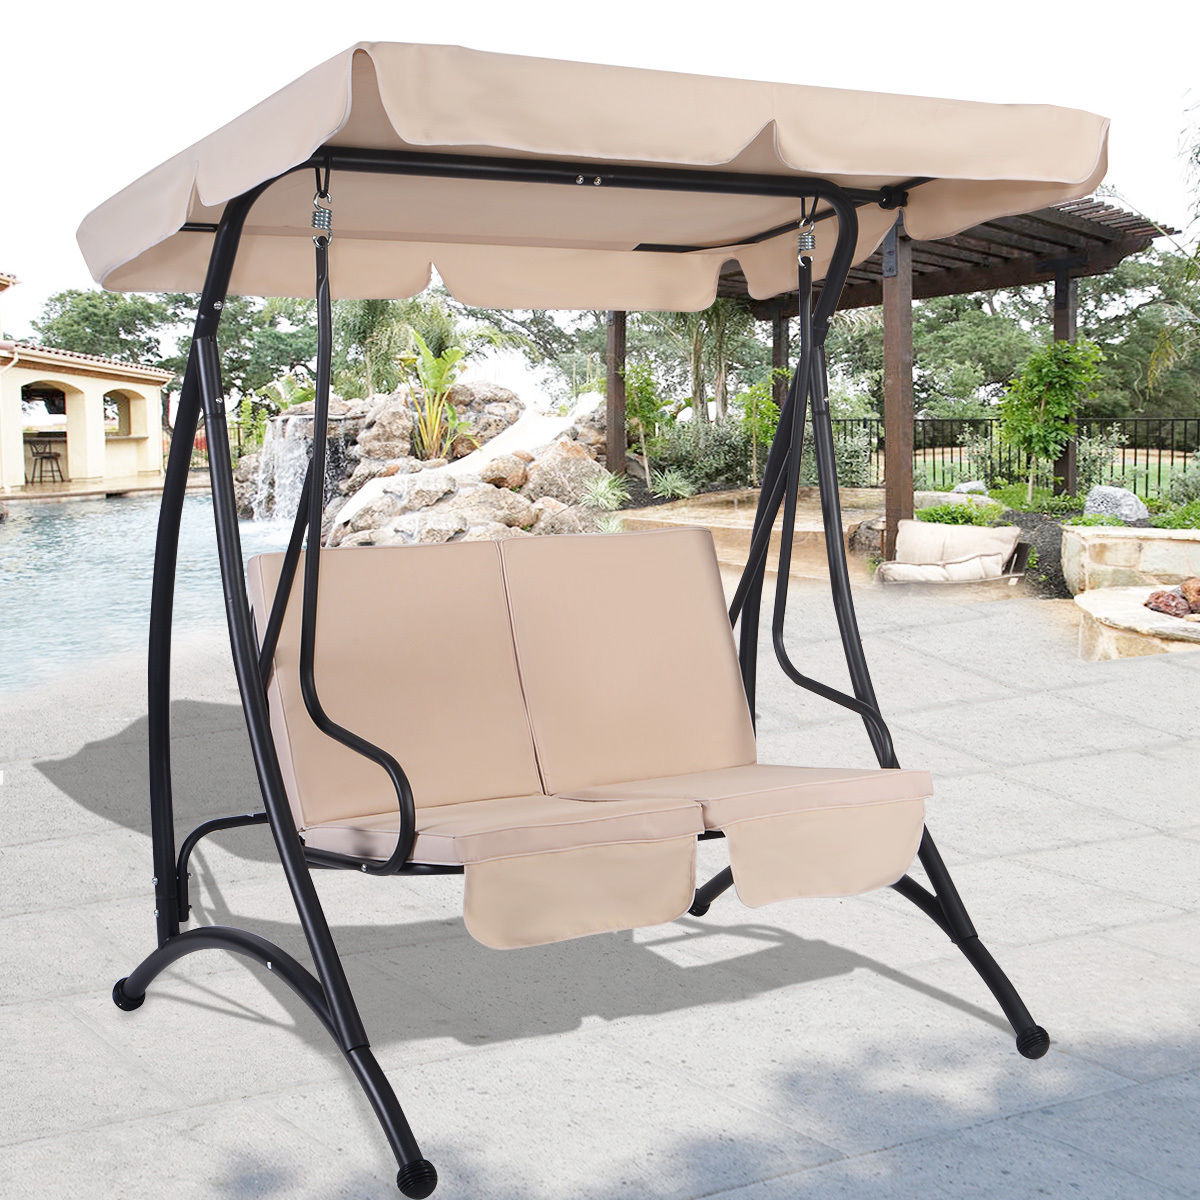 Goplus Beige 2 Person Canopy Porch Swing & Goplus Beige 2 Person Canopy Porch Swing - Walmart.com